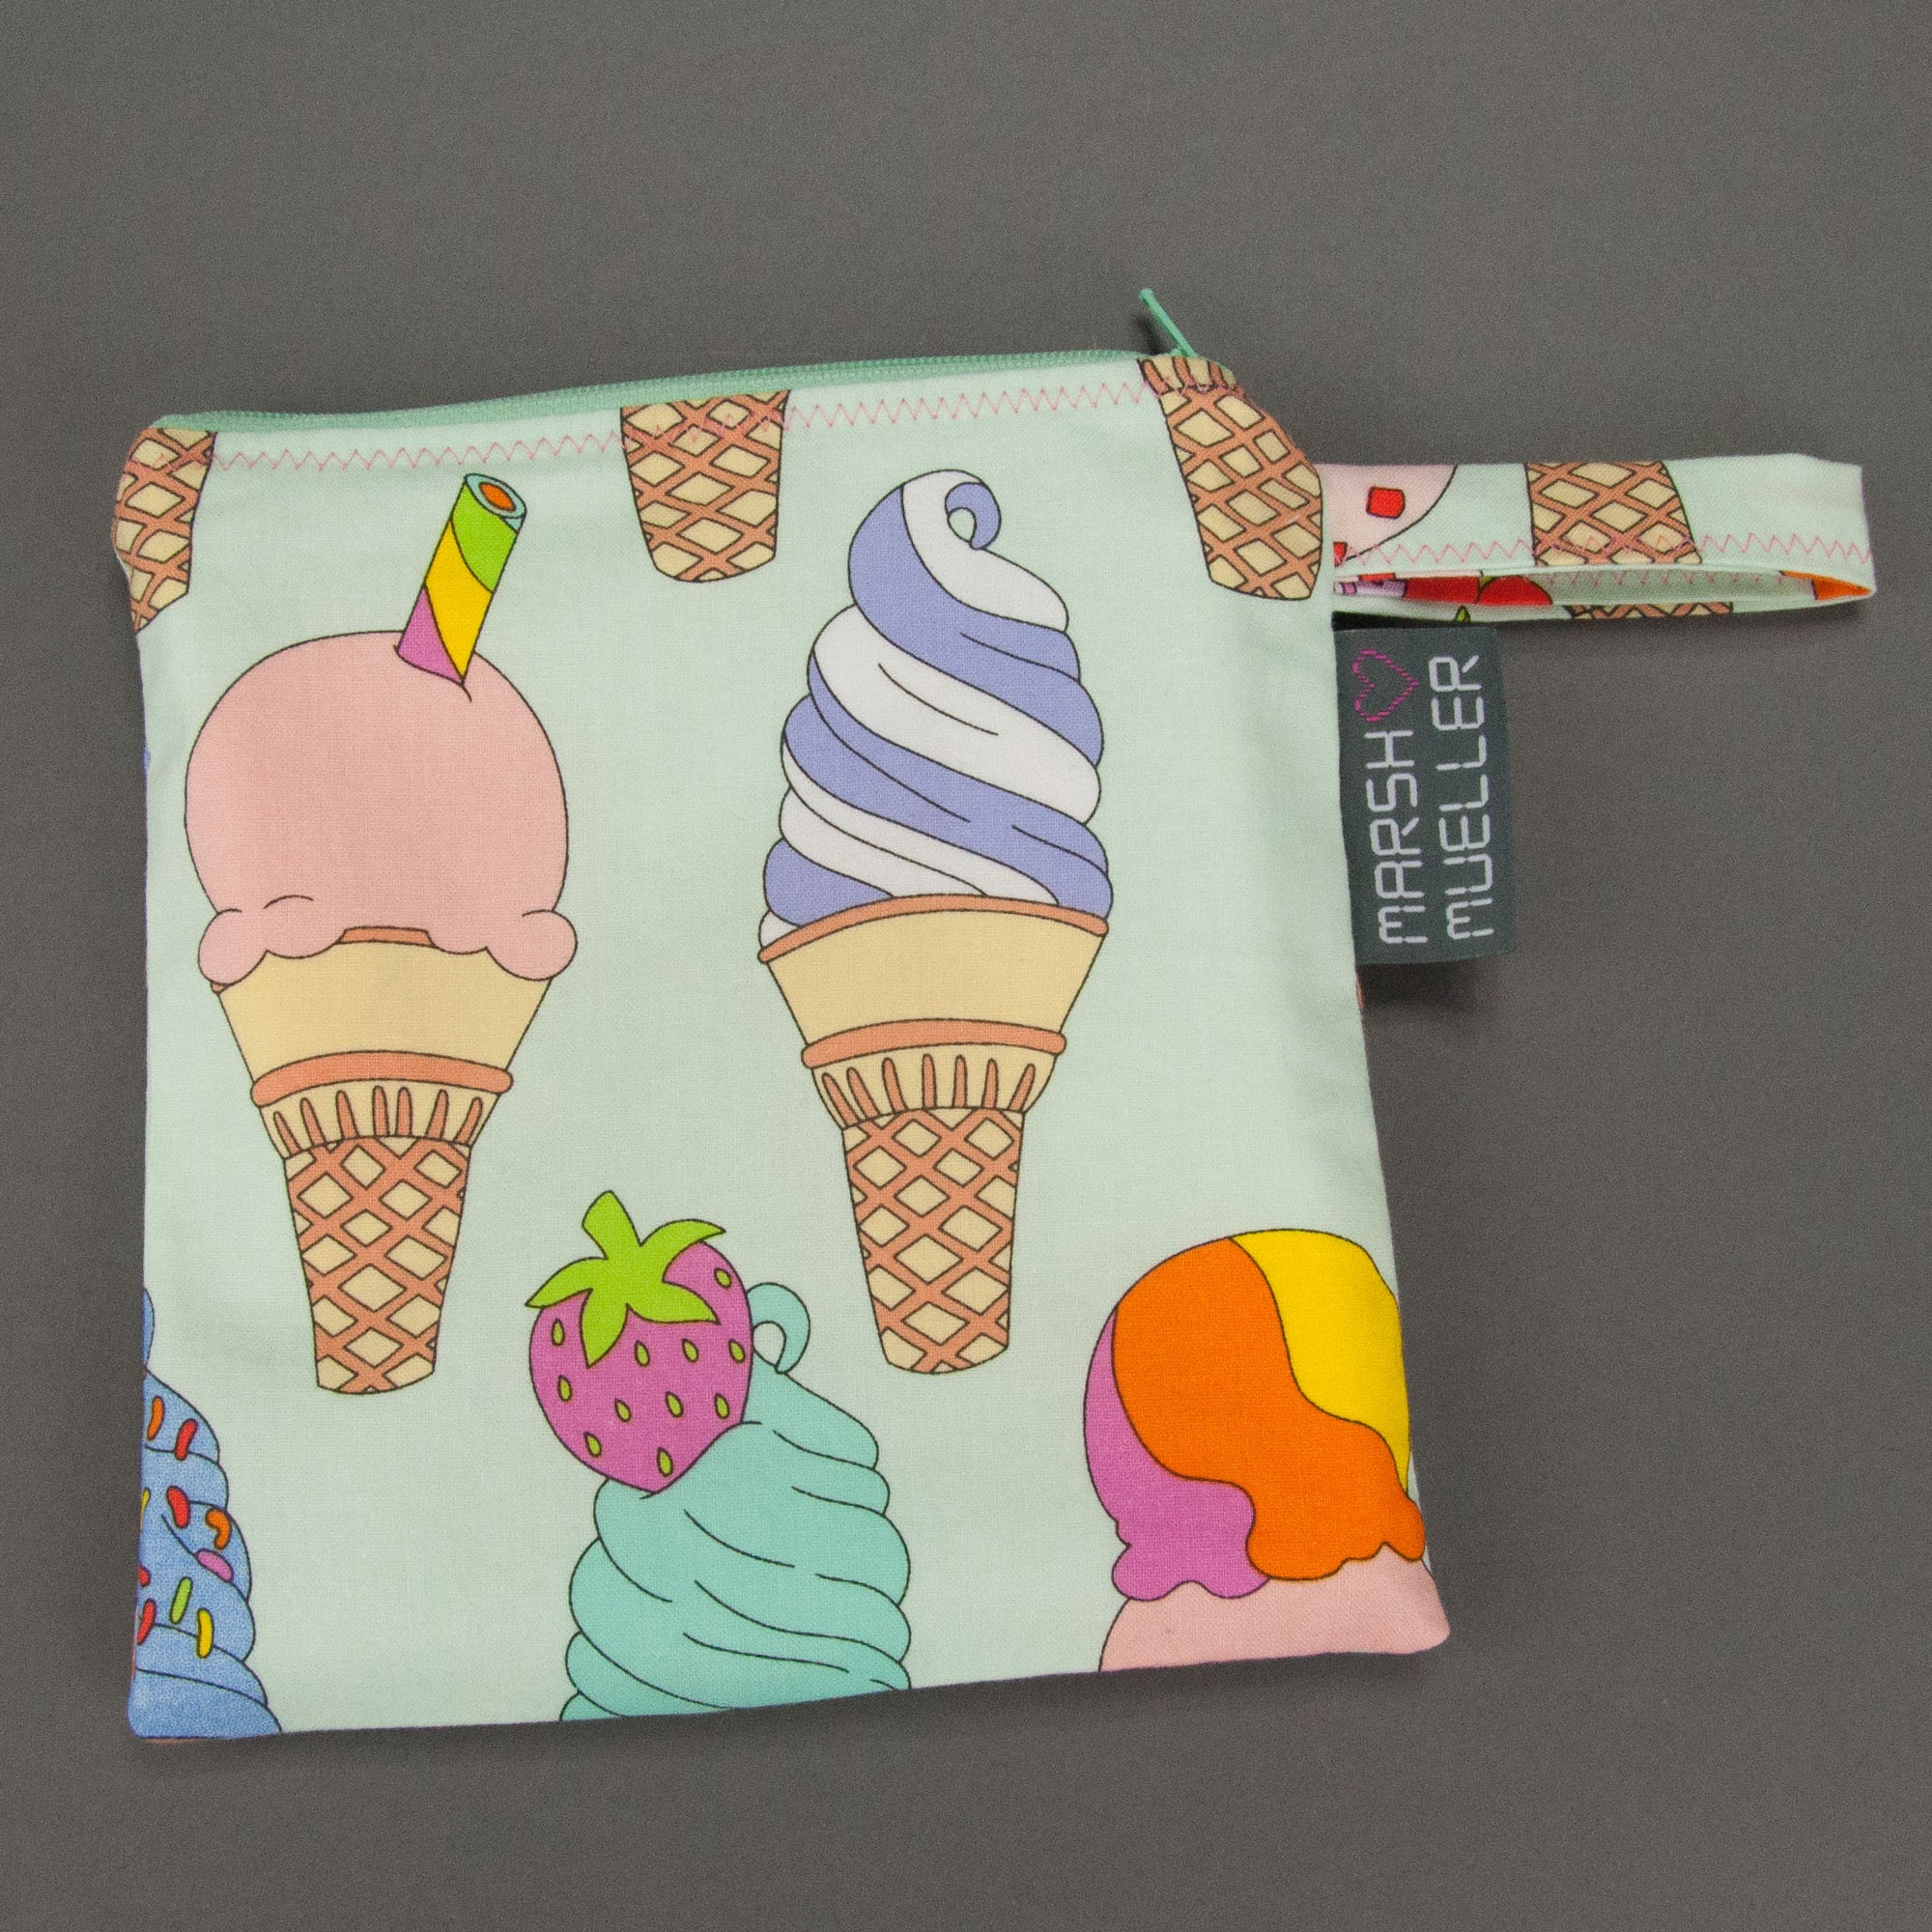 I Scream, You Scream Reusable Sandwich Bag, Reusable Sandwich Bag, - MarshMueller